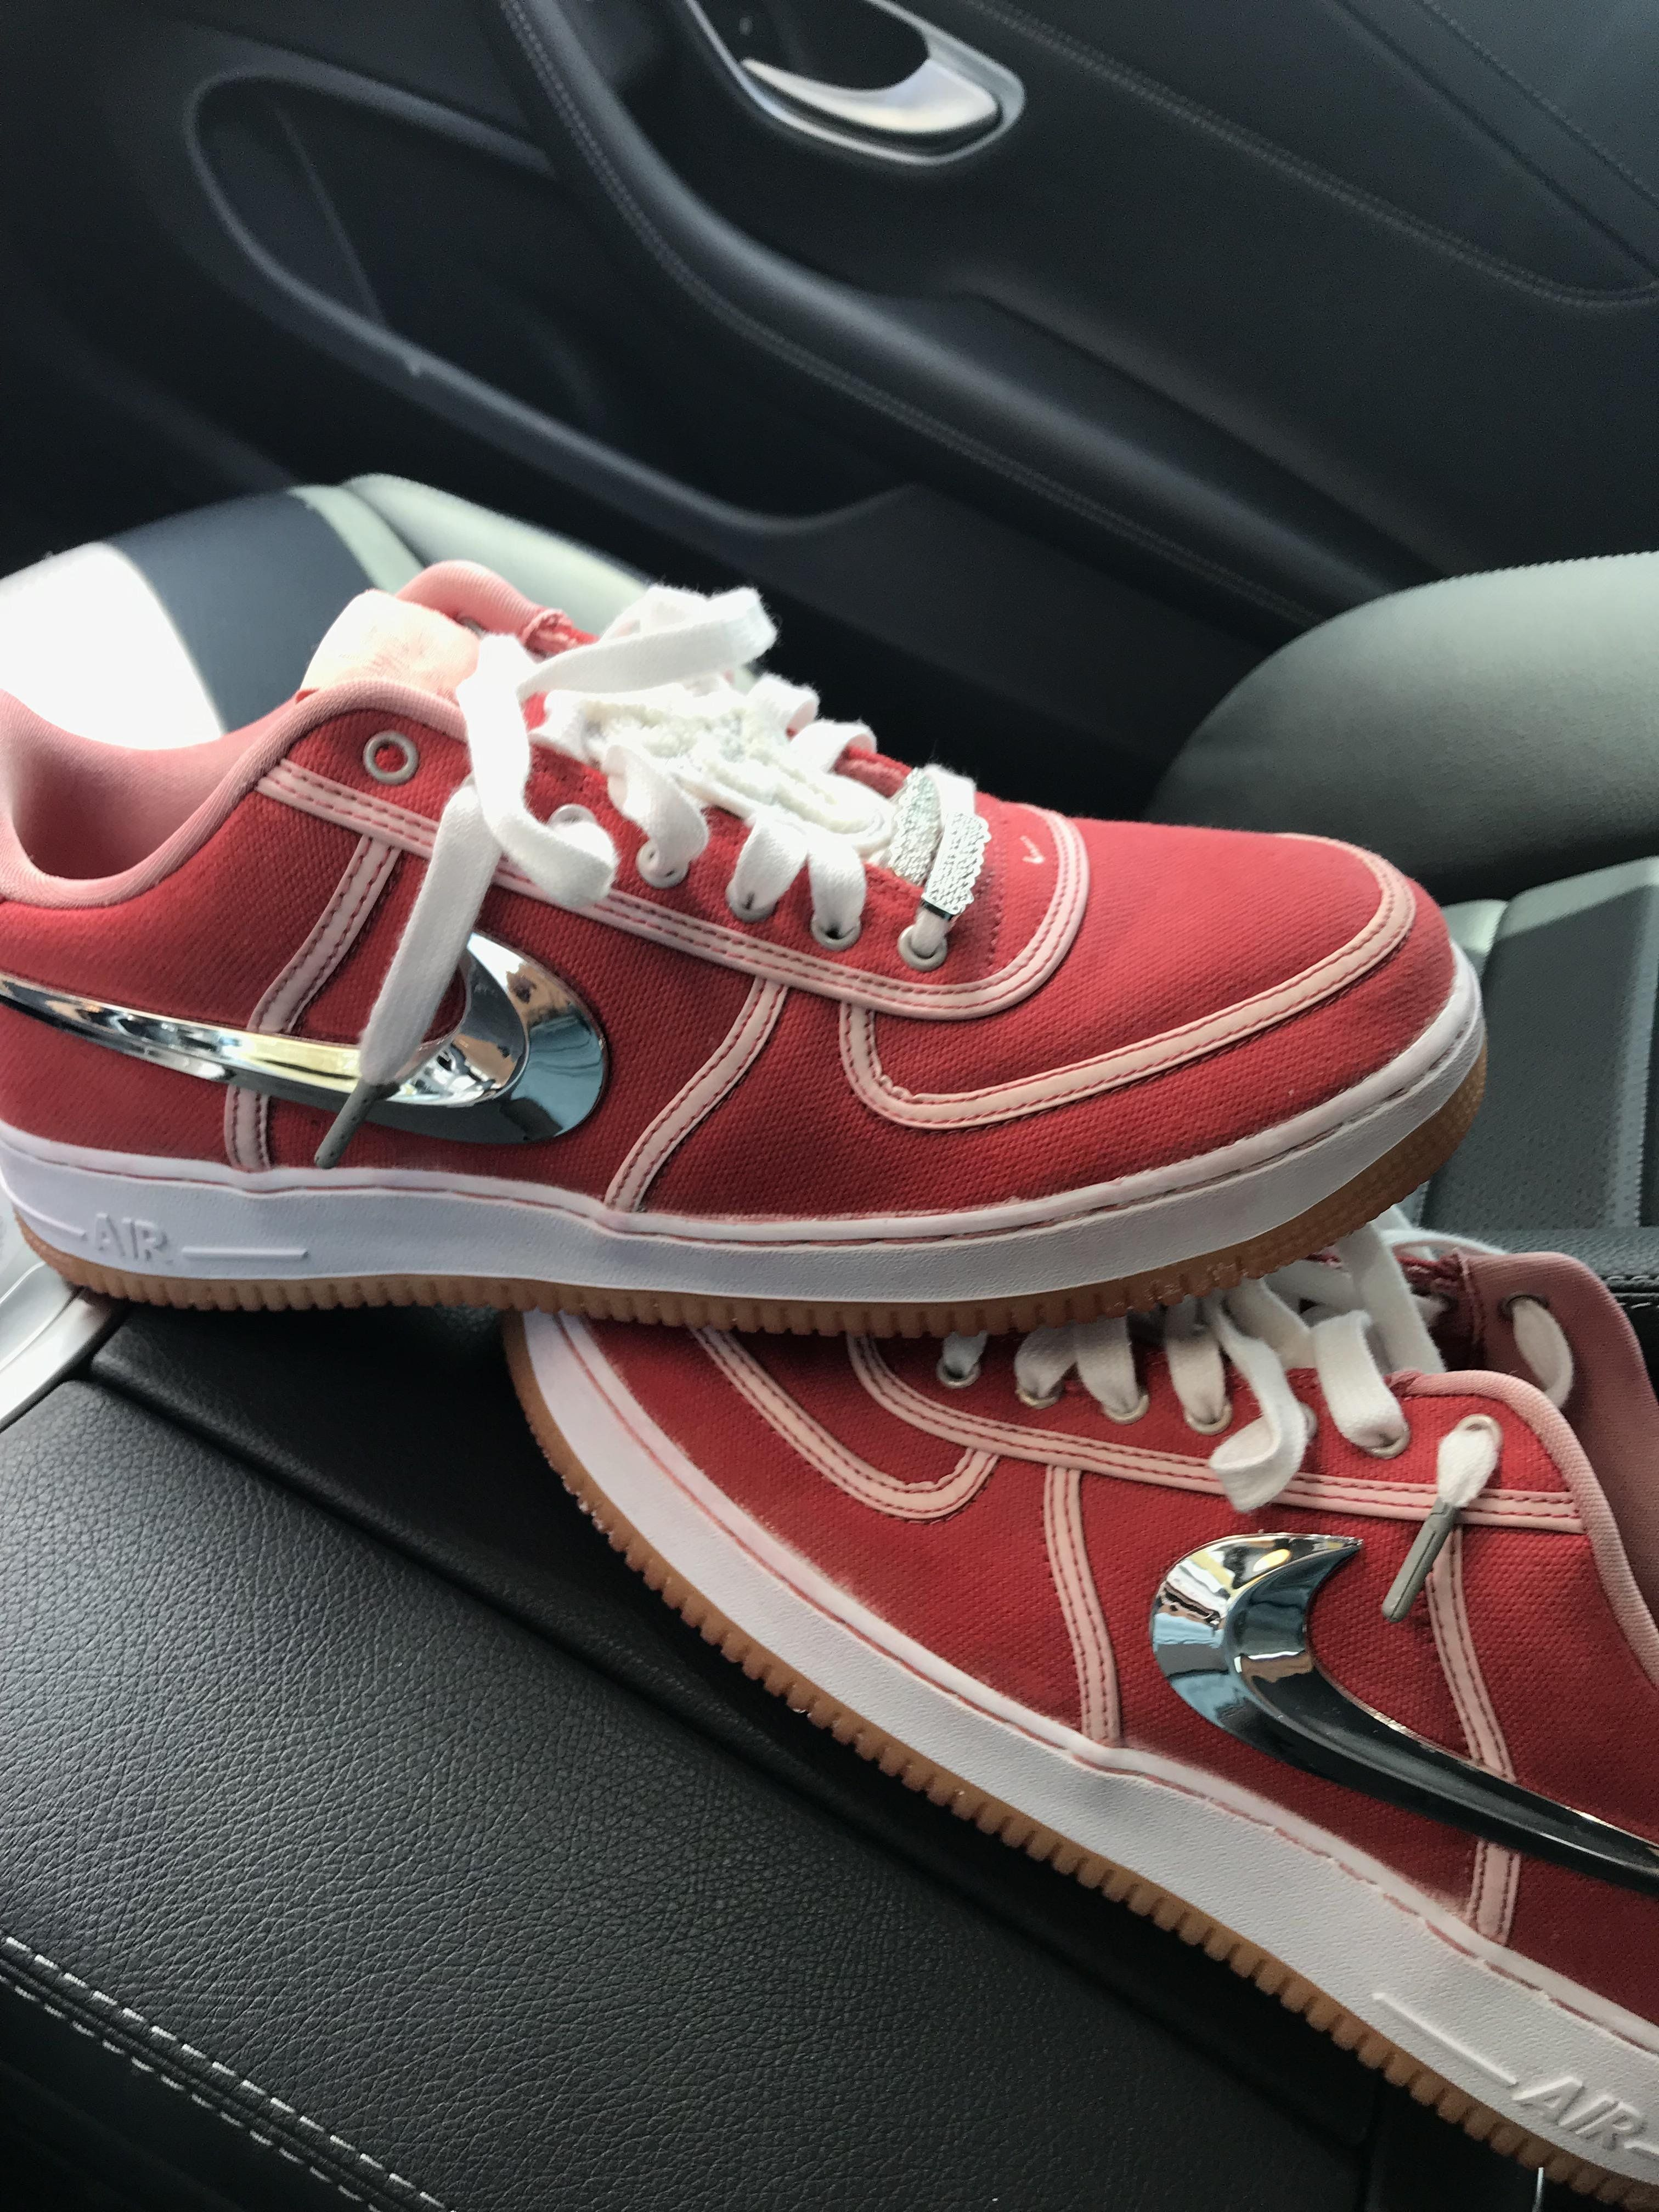 Dyed my Travis Scott Air Force 1's red Sneakers